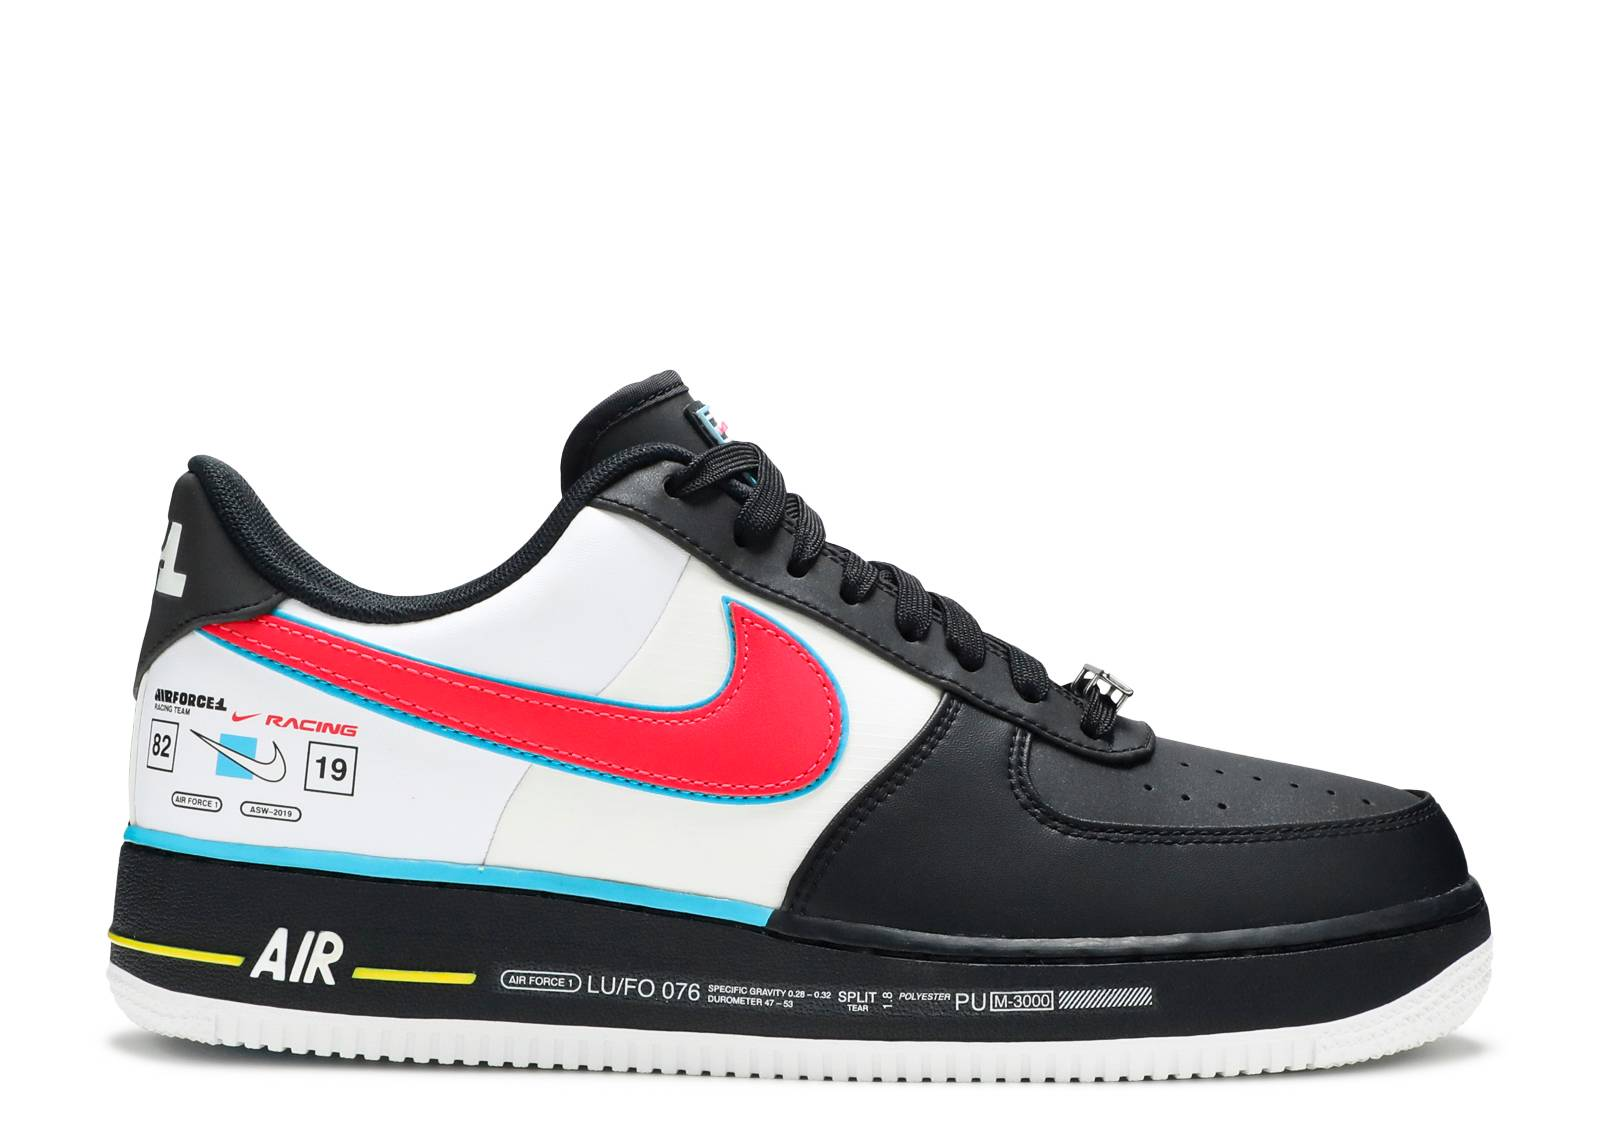 "Air Force 1 Low '07 QS 'Motorsport' ""Motorsport"""